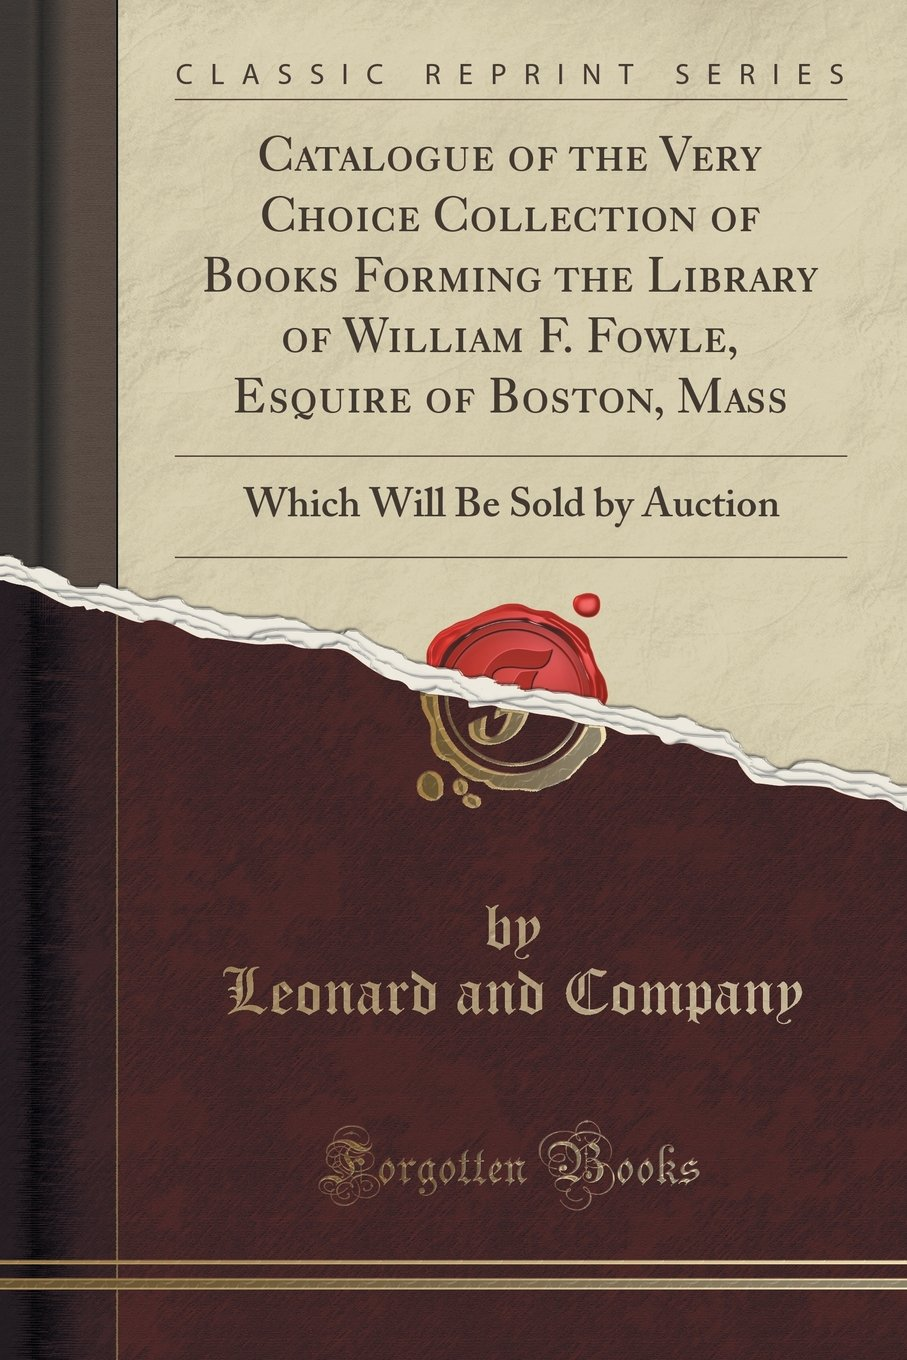 Download Catalogue of the Very Choice Collection of Books Forming the Library of William F. Fowle, Esquire of Boston, Mass: Which Will Be Sold by Auction (Classic Reprint) PDF